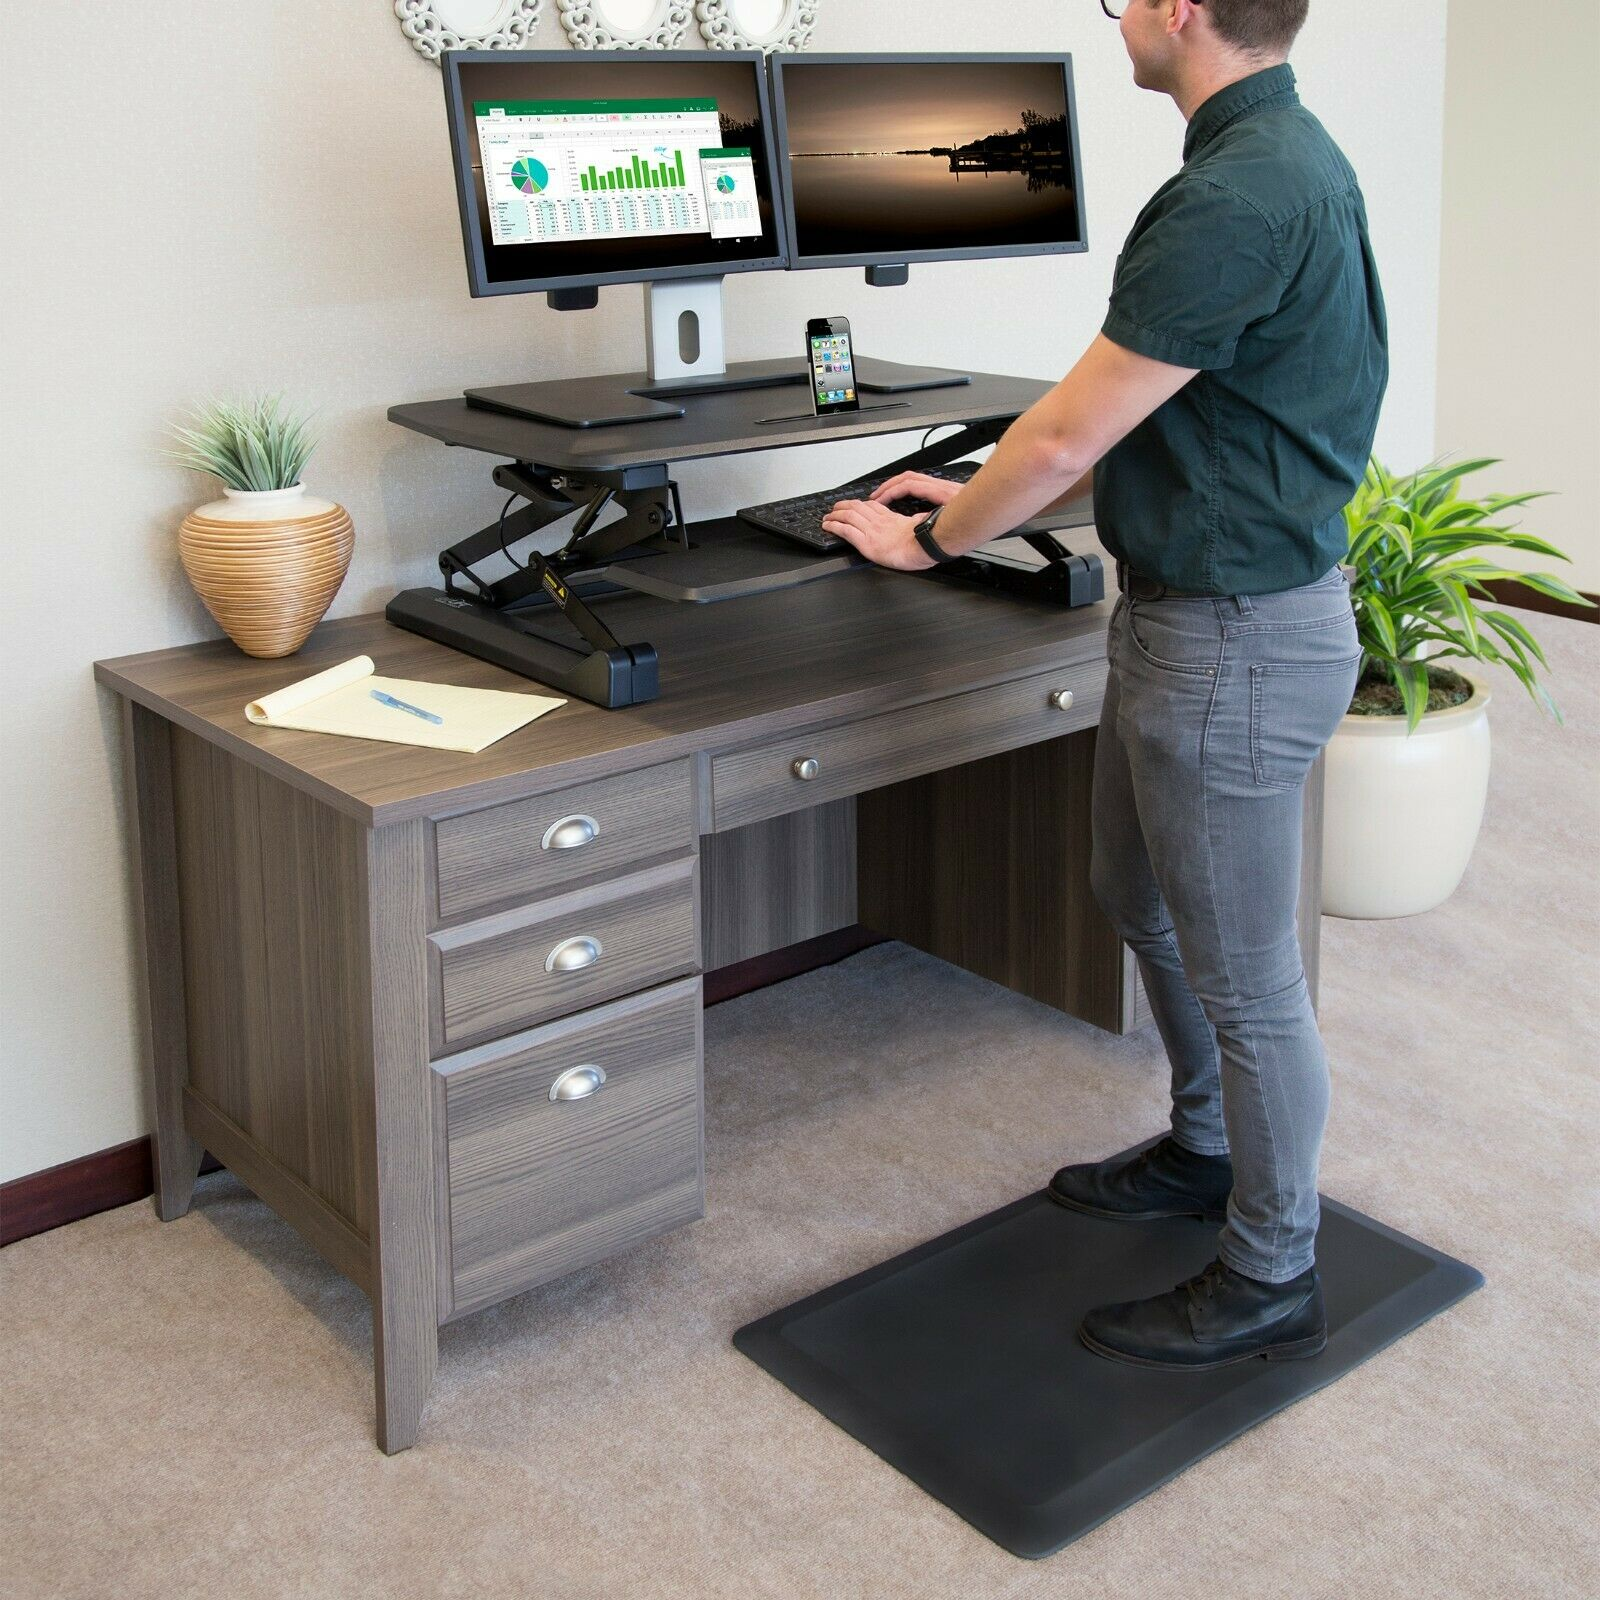 "SEVILLE CLASSICS AIRLIFT ANTI-FATIGUE COMFORT MAT FOR STANDING DESKS,20"" X 32"" Door Mats & Floor Mats"